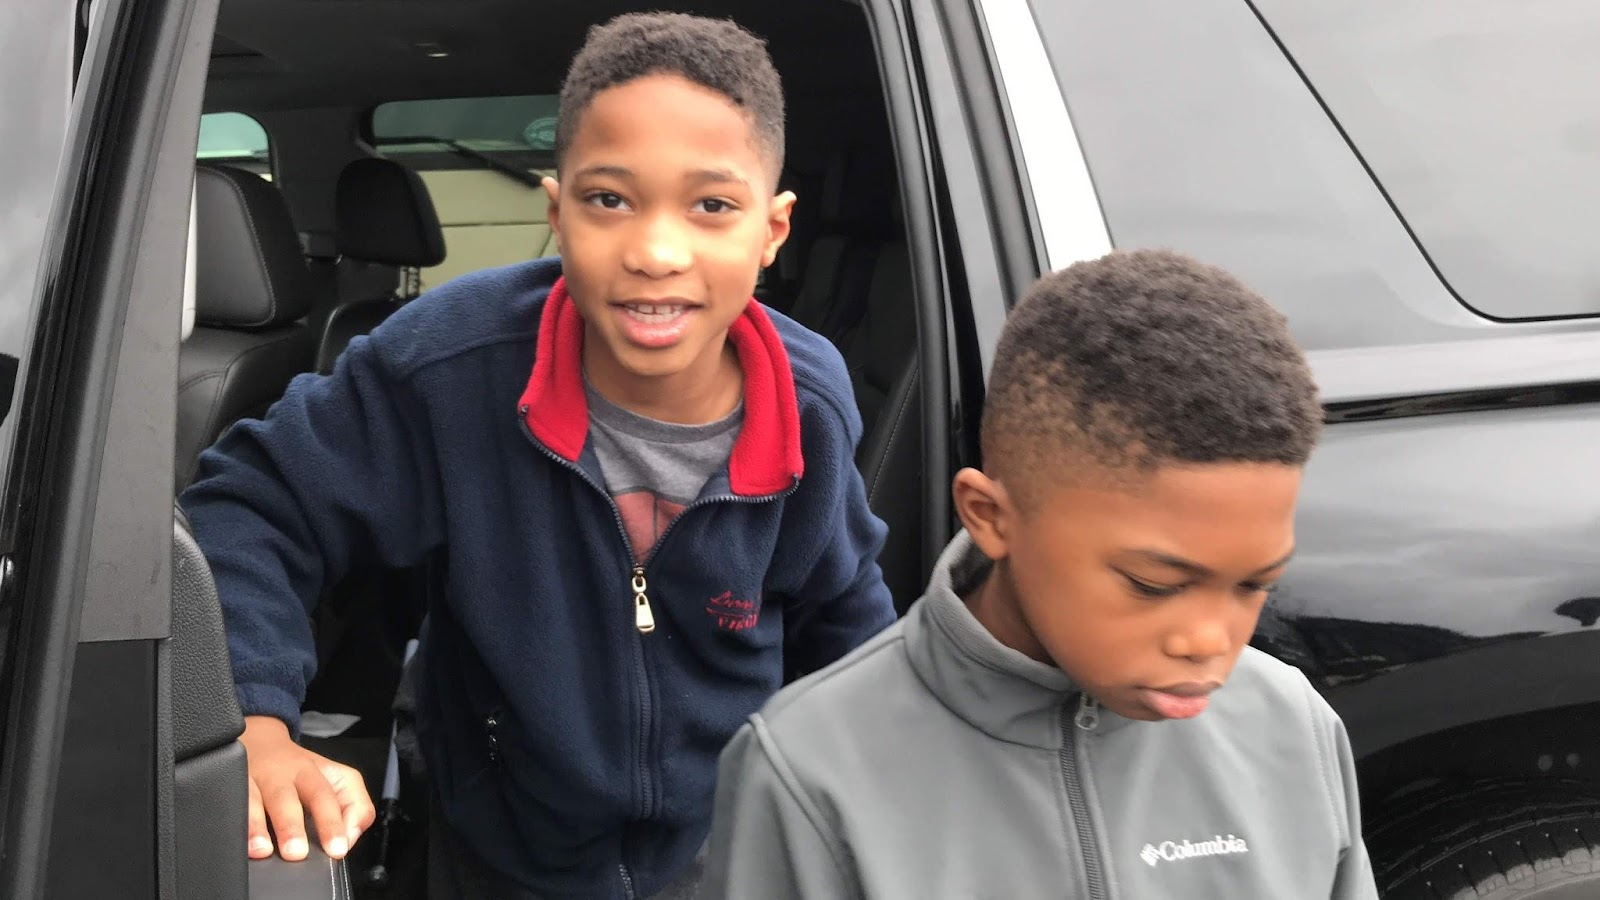 Two young boys exiting a car